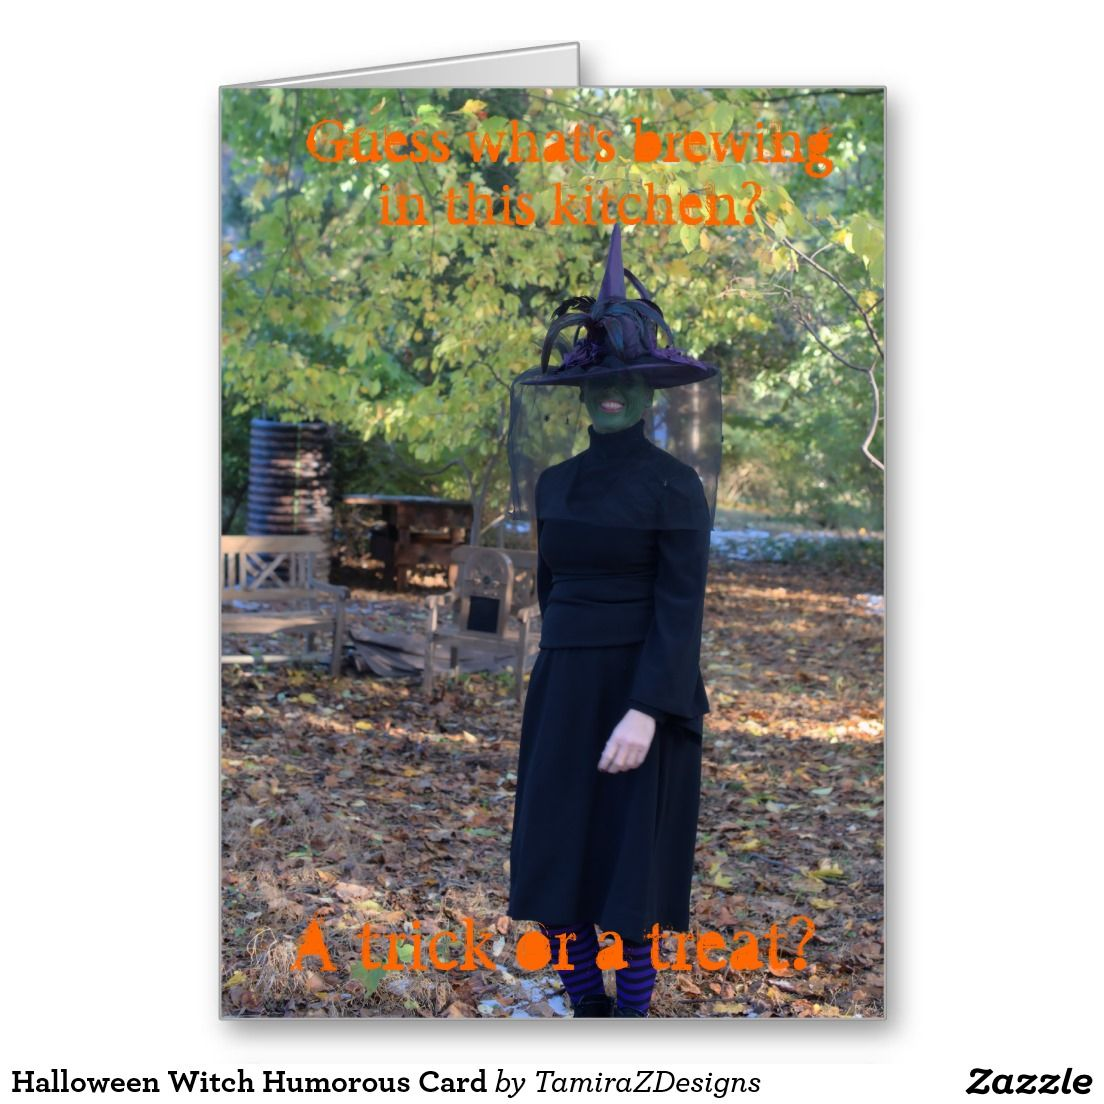 Halloween Witch Humorous Greeting Cards With Funny Message Inside Of